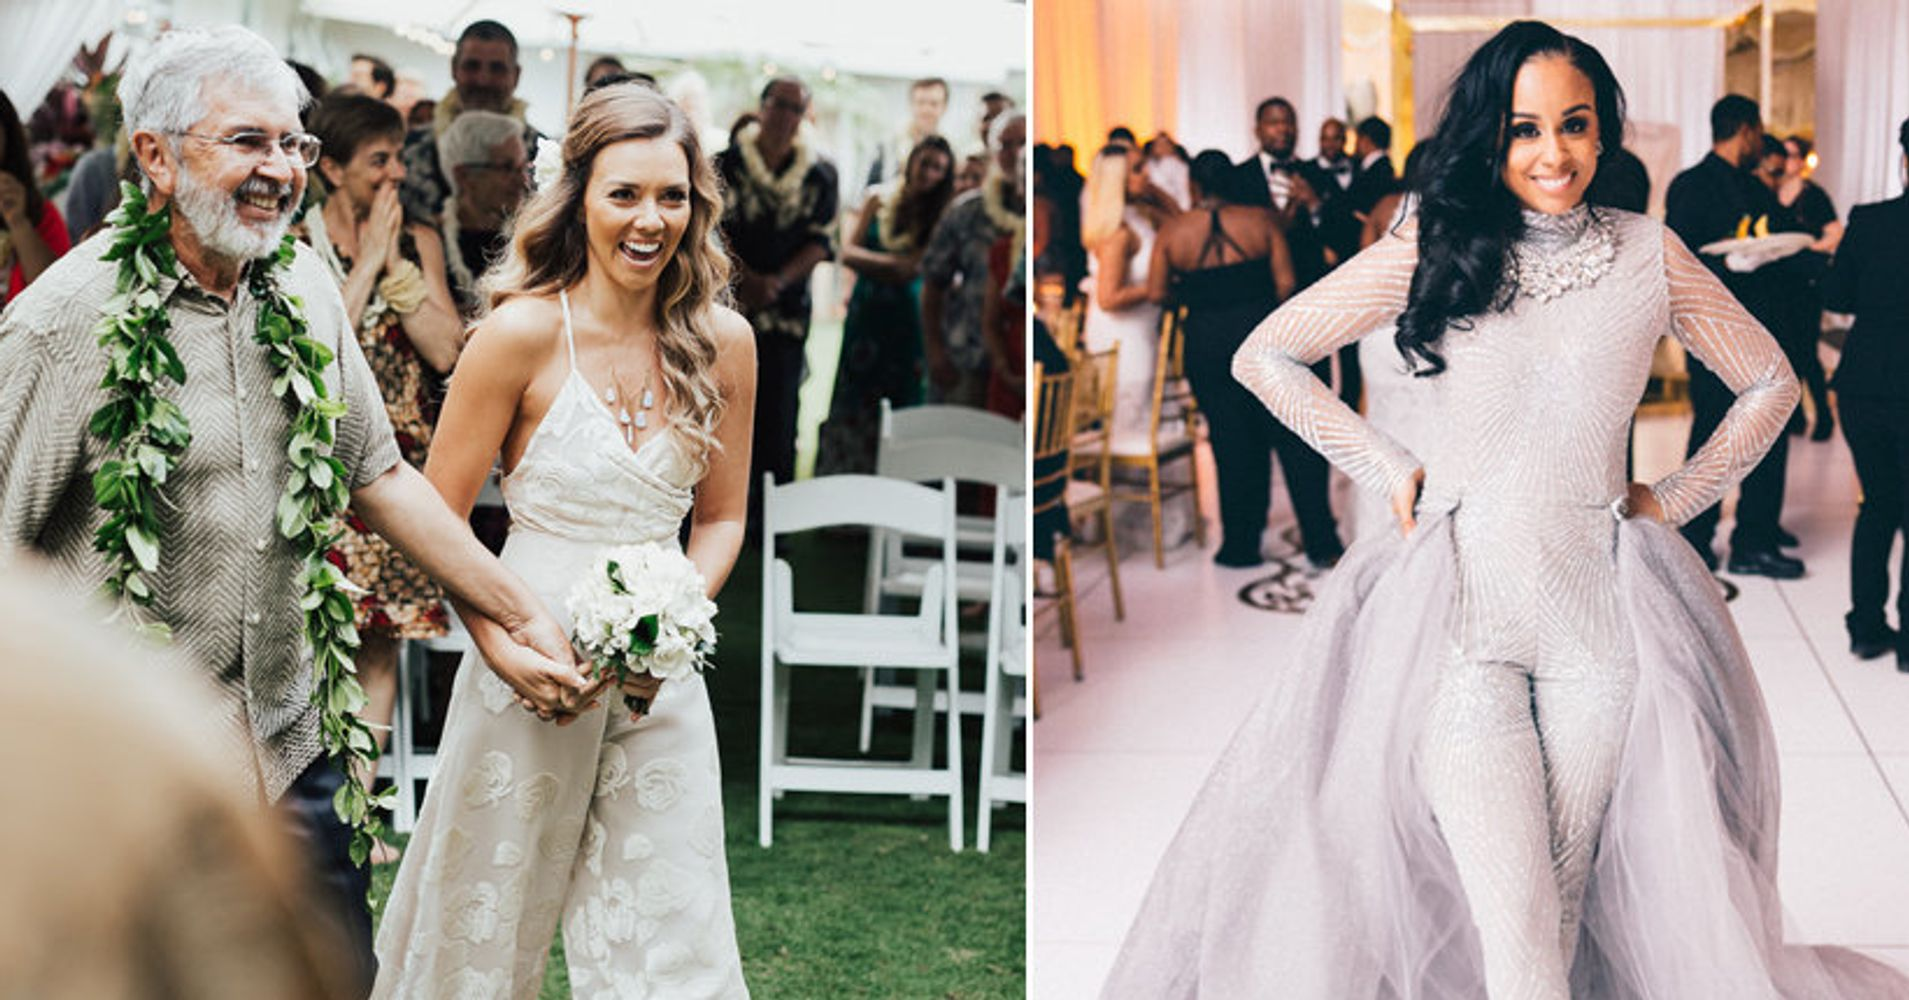 16 Fierce Wedding Jumpsuits For Brides Who Don't Do